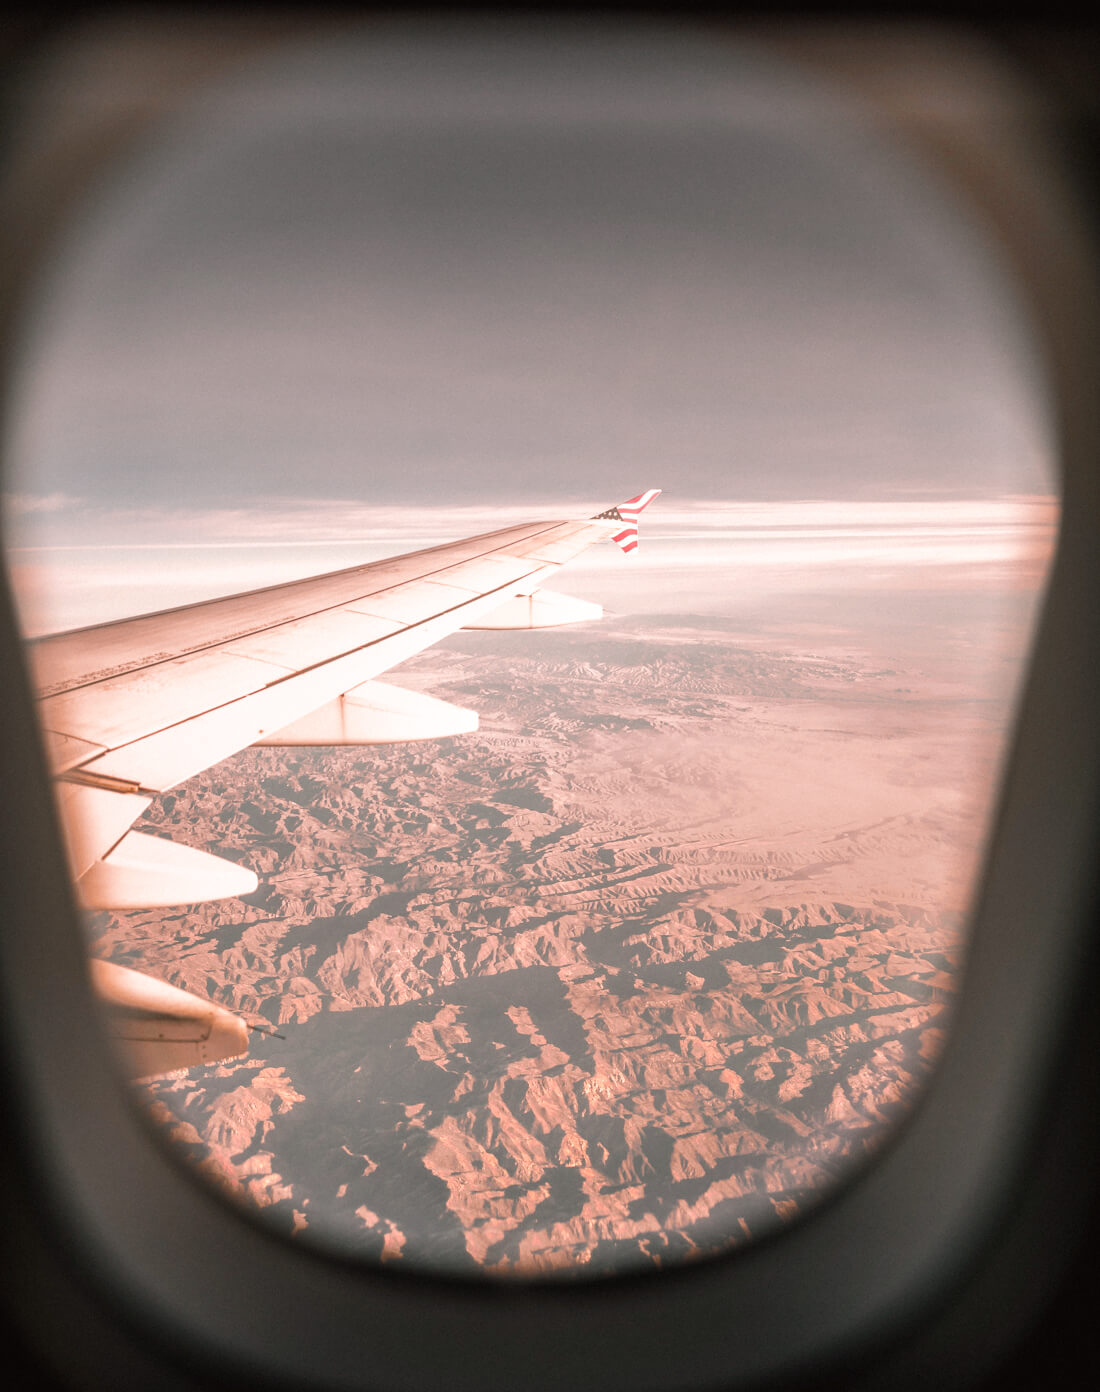 View of aeroplane wing framed by the circle window